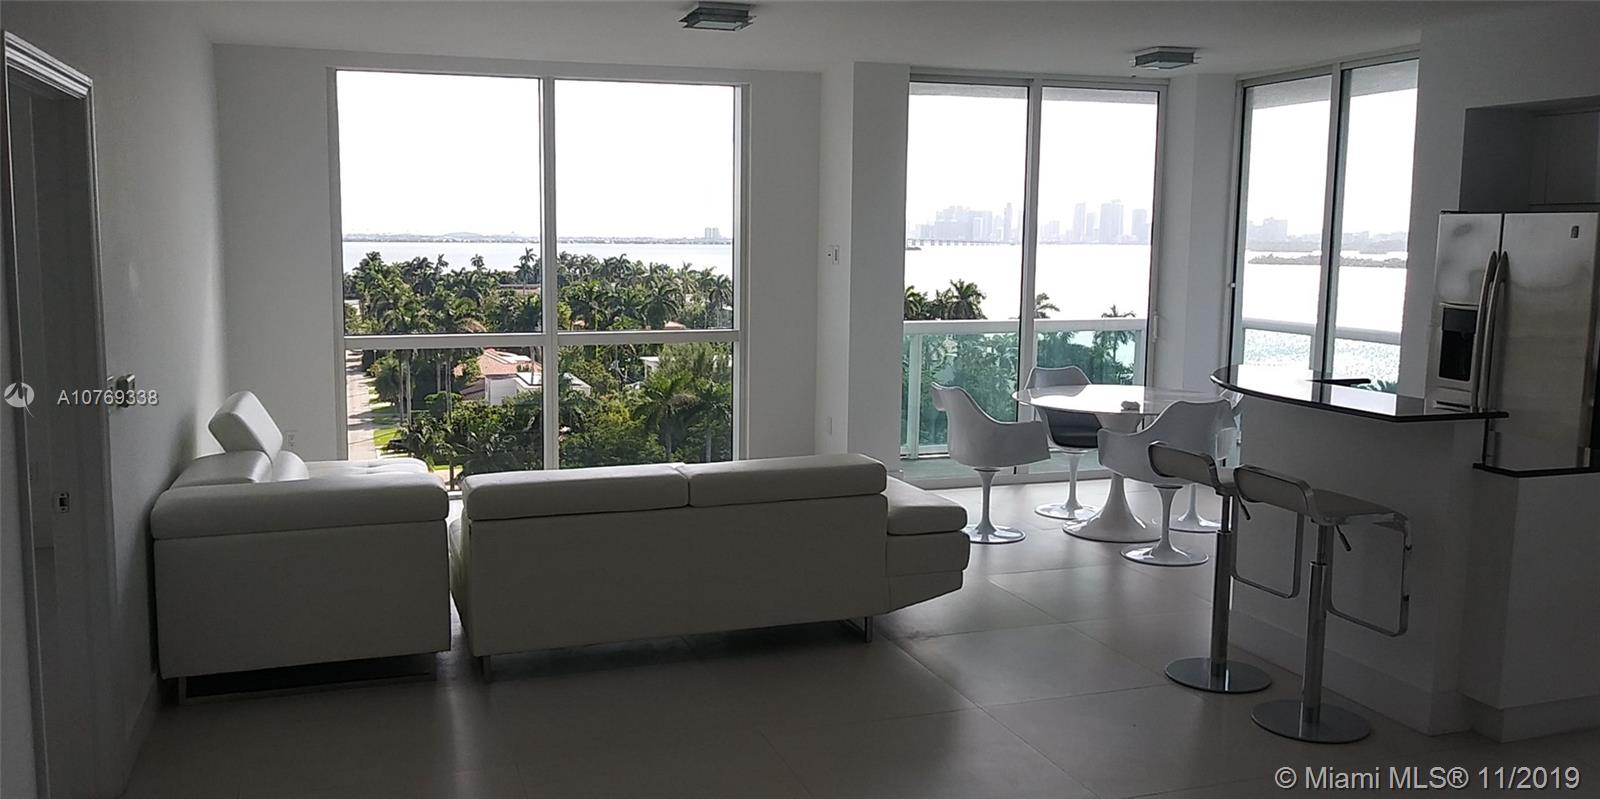 7900  Harbor Island Dr #926 For Sale A10769338, FL